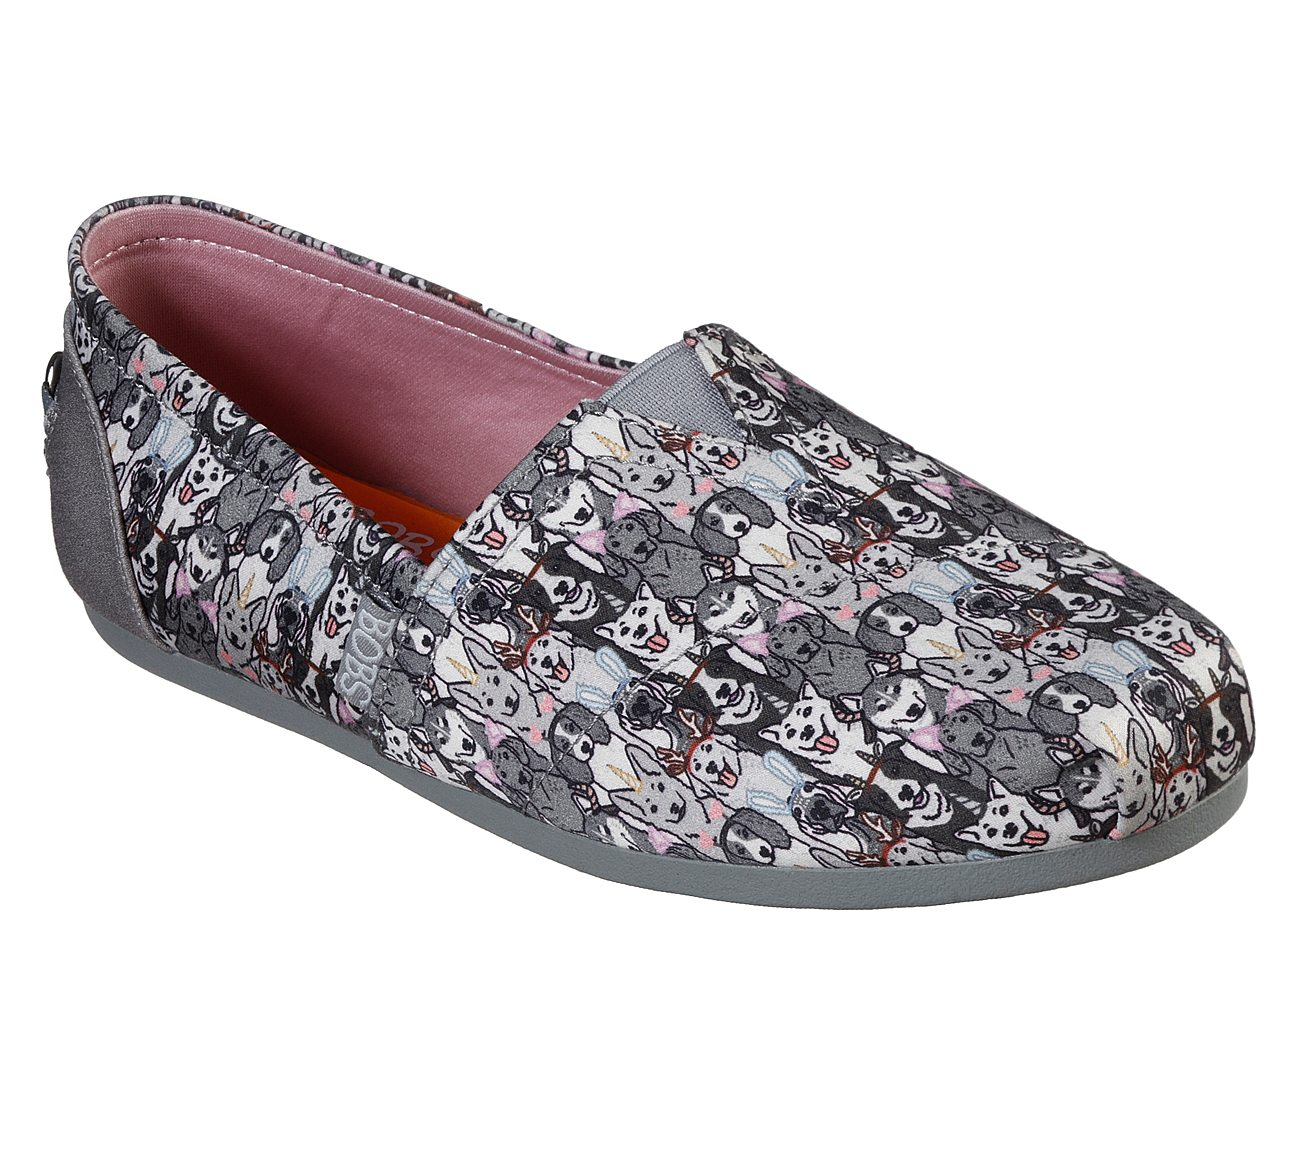 SKECHERS BOBS Plush - Playdate BOBS Shoes